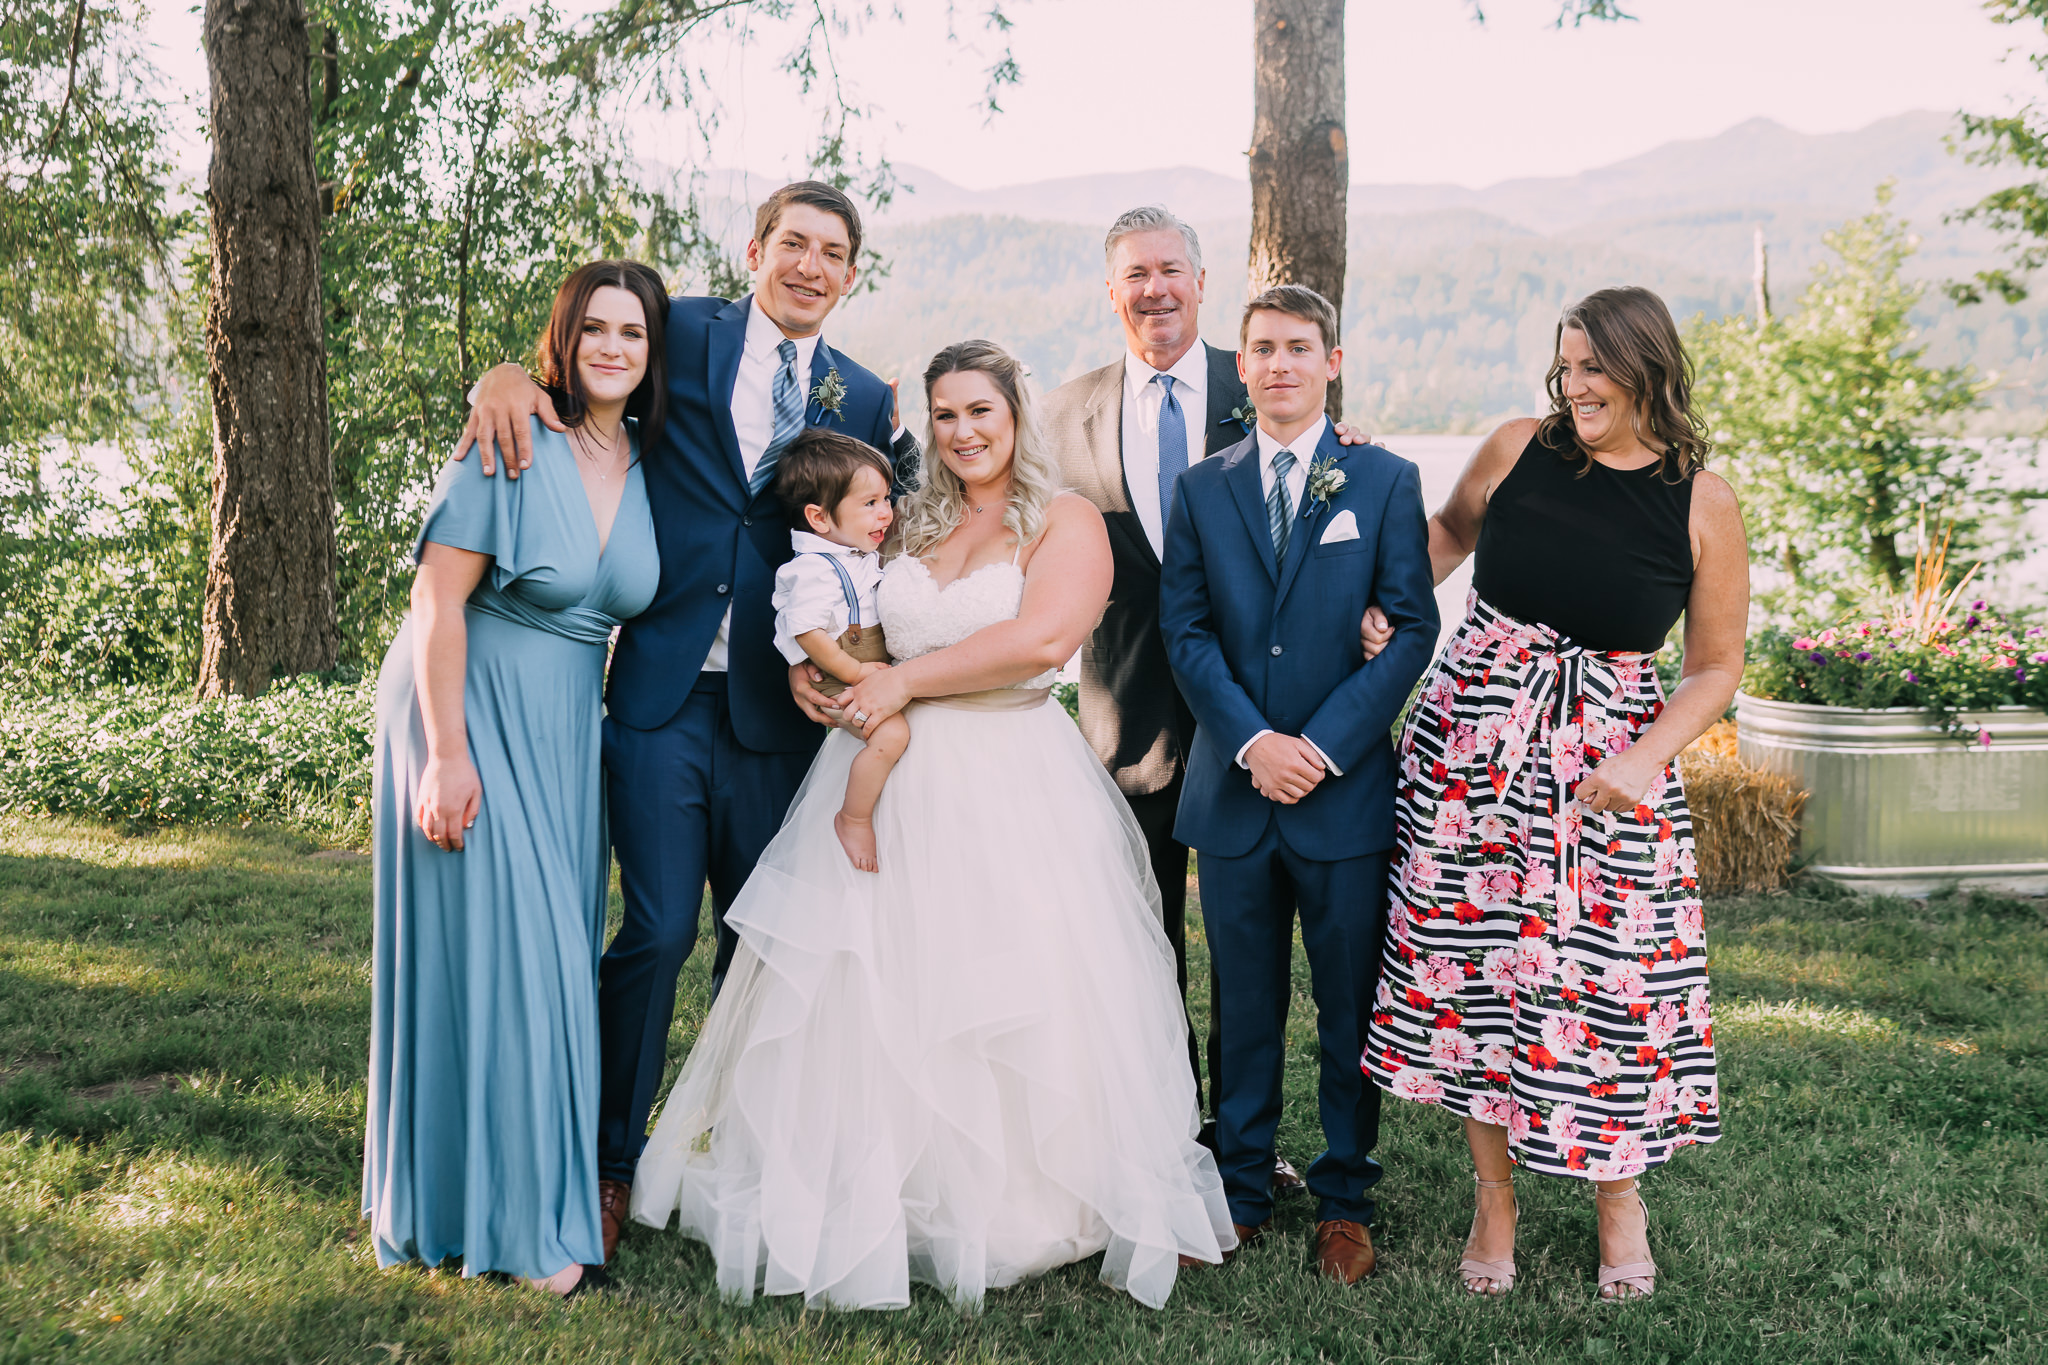 Bride's family group formal photo Wedding Backyard Alfred Tang